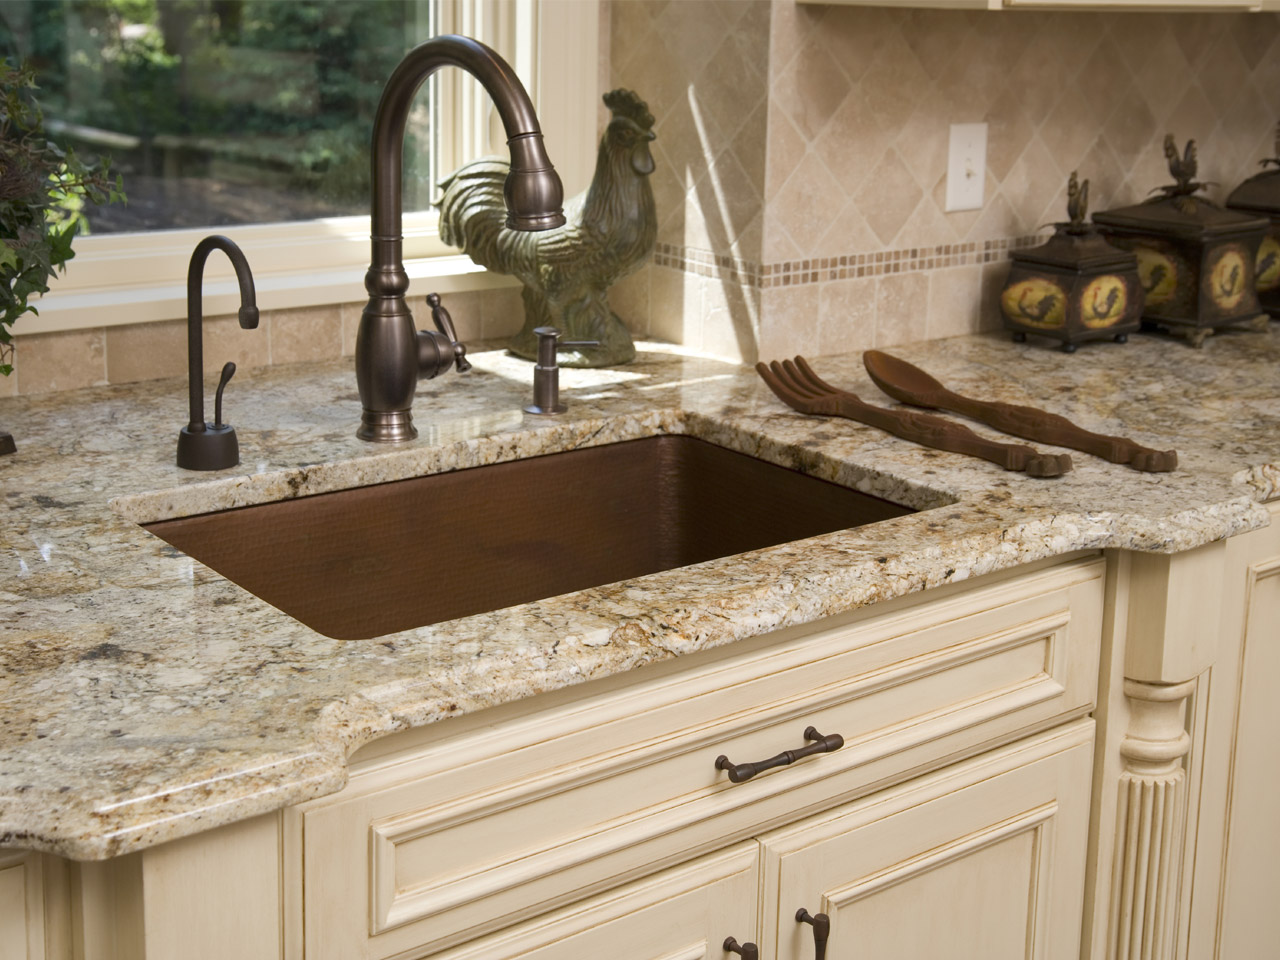 Your Local Kitchen Cabinets Store - Roanoke VA & Beyond - Capps Home ...